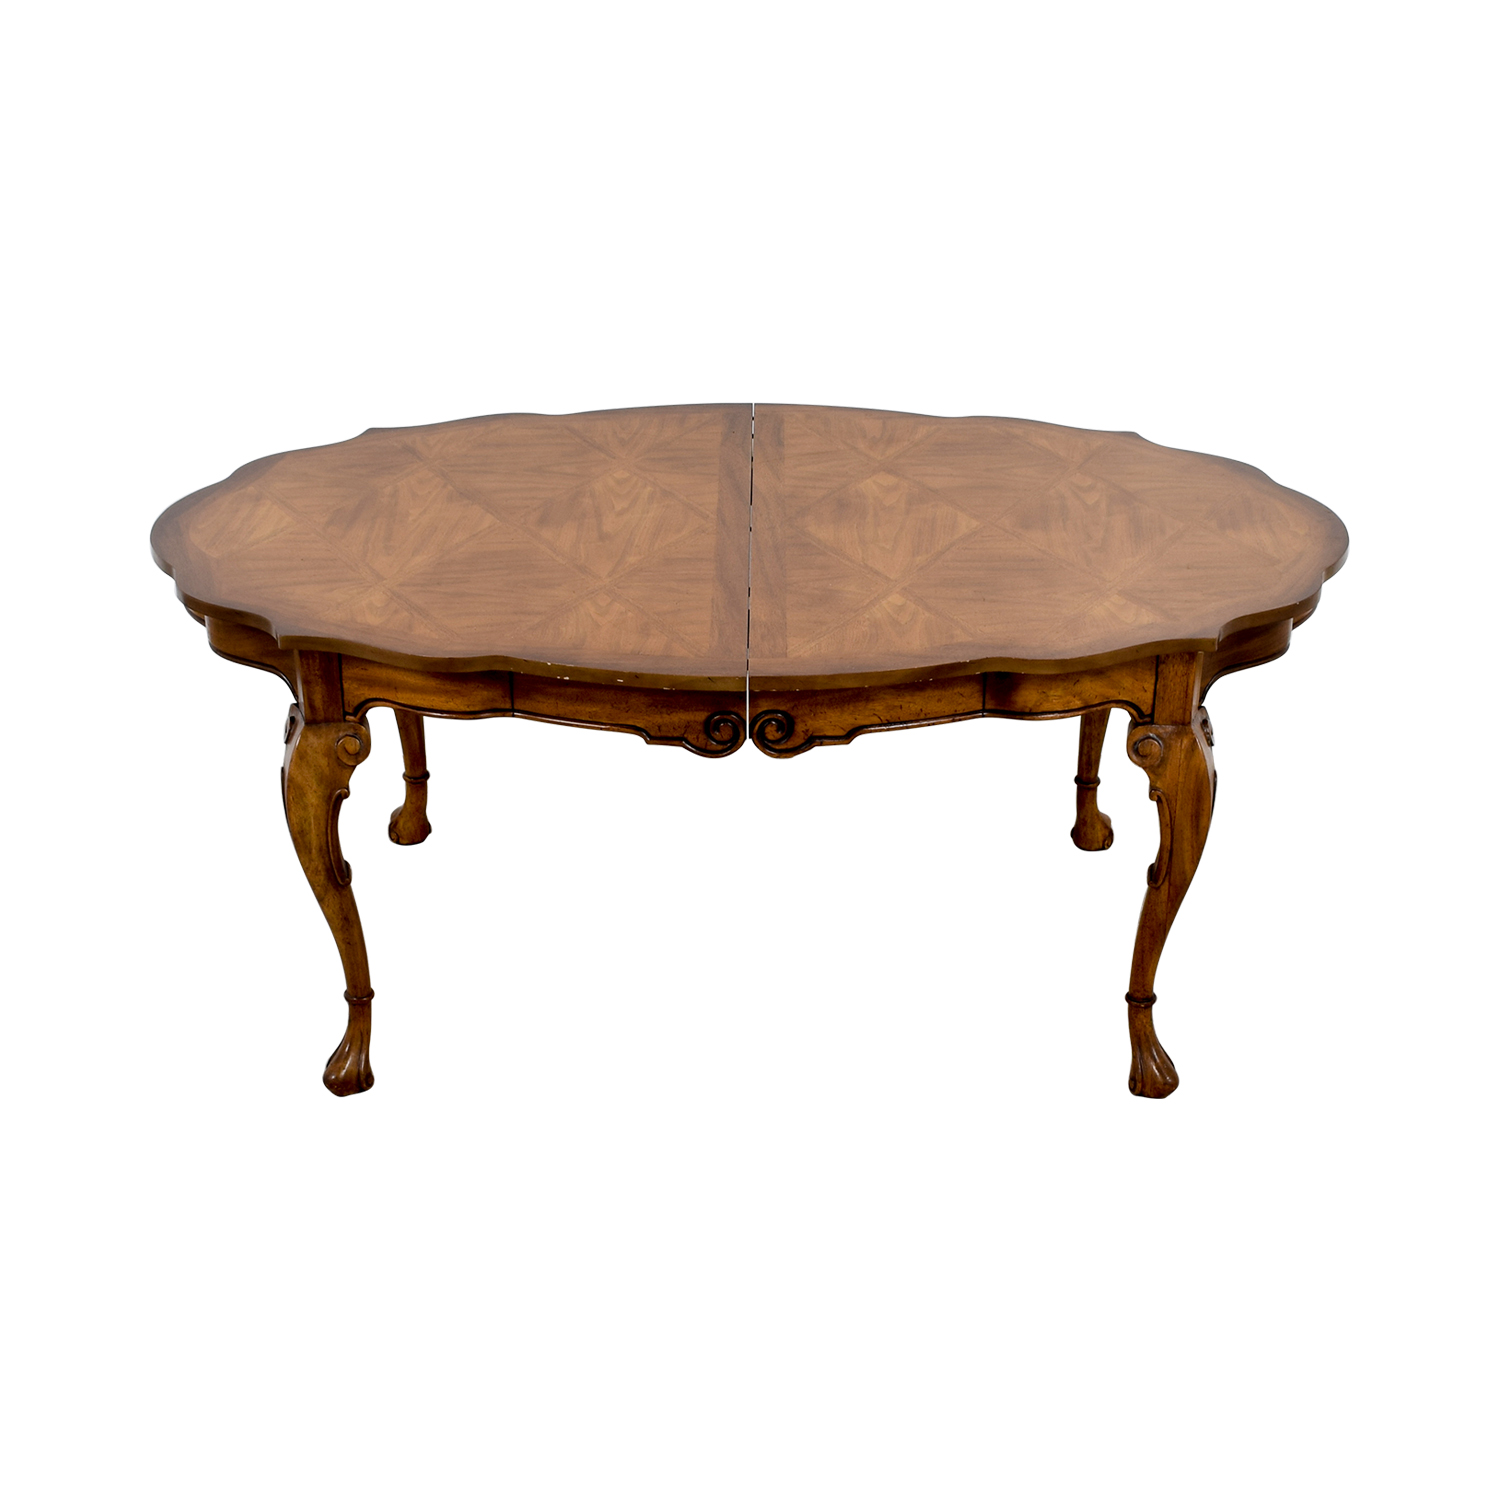 Carved Extendable Wood Dining Table dimensions